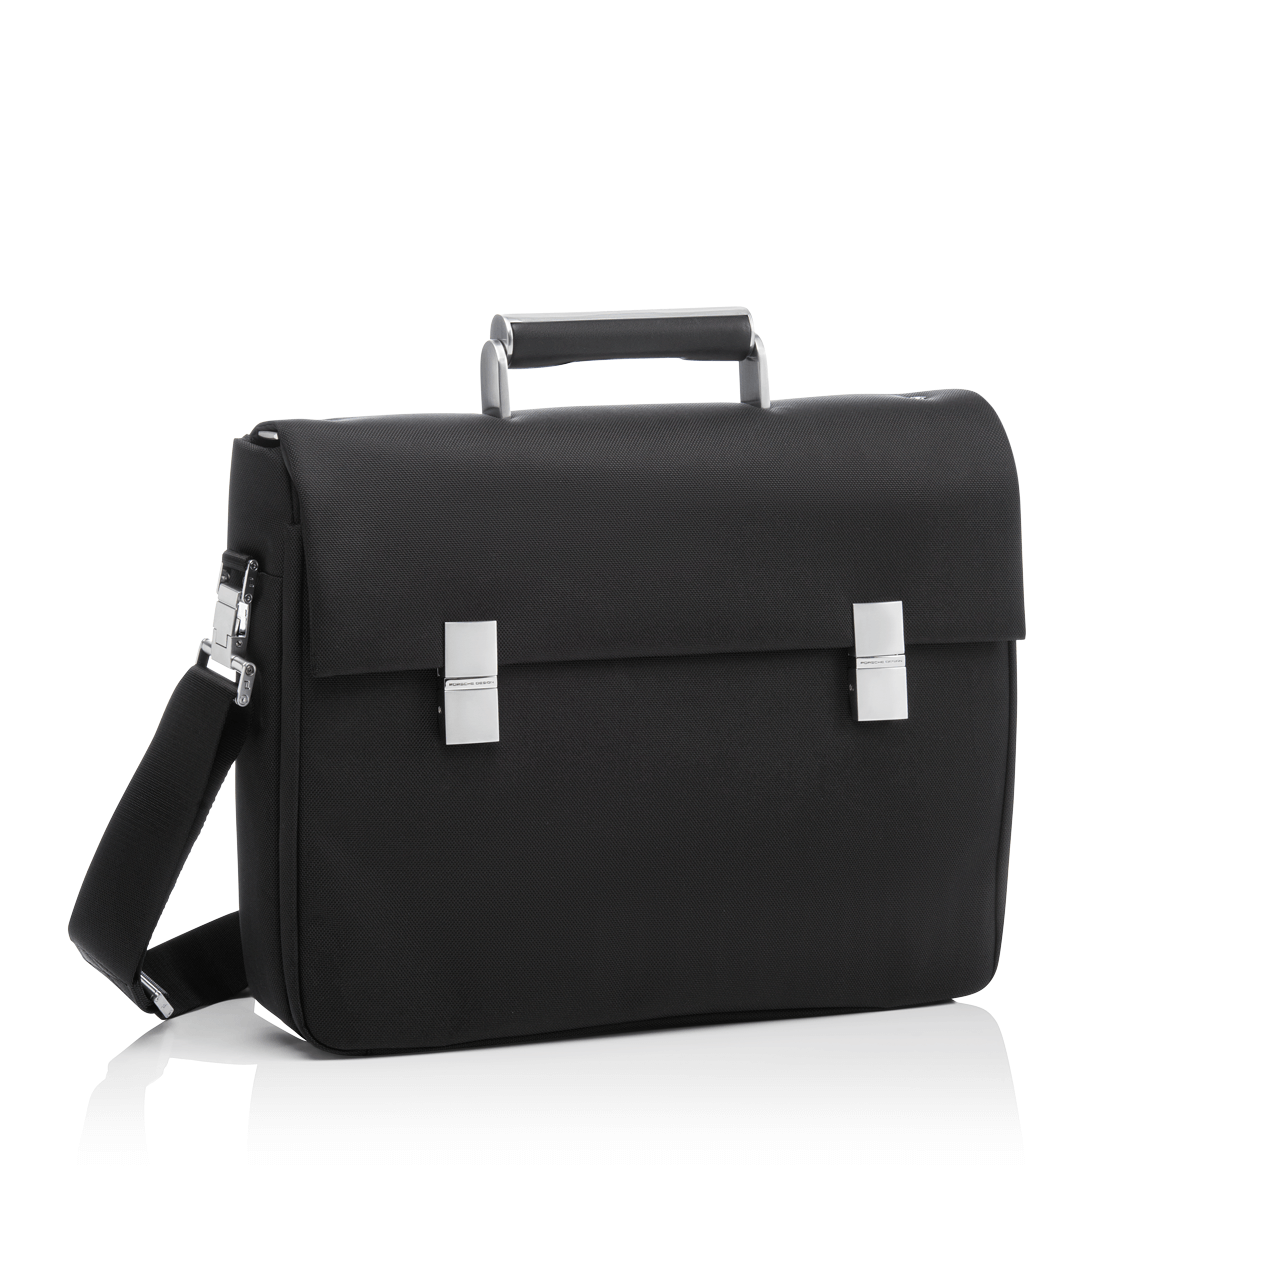 FRENCH CLASSIC 3.0 BRIEFBAG FM - фото 1